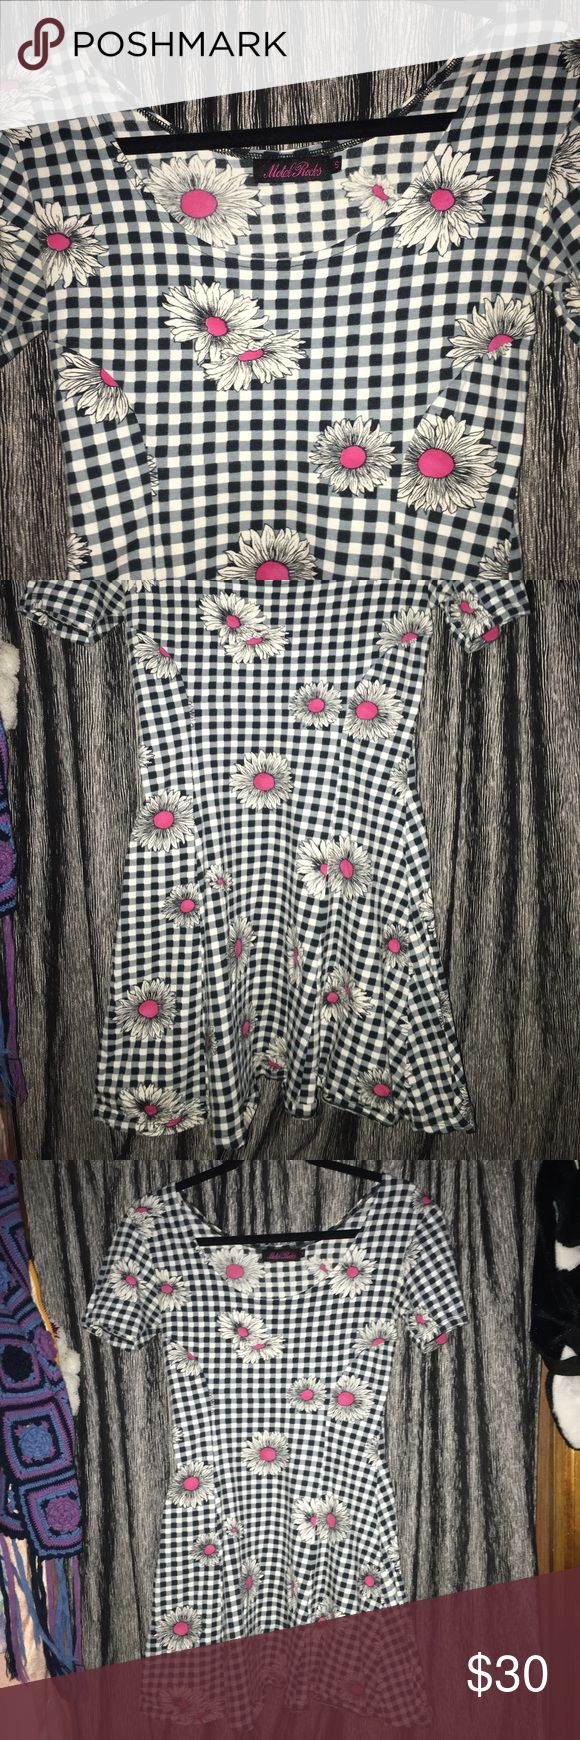 ✨Checkered Daisy Dress✨ This is so freaking cute! I purchased this used from EBay and just never wore it. I'm not a fan of the pink on the daisies, that's really the only reason I never wore it. It's in beautiful previously loved/used condition. It is the cutest little dress ever when it's on! ✨ any questions, please ask. Pet friendly smoke free home!💖 Motel Rocks Dresses